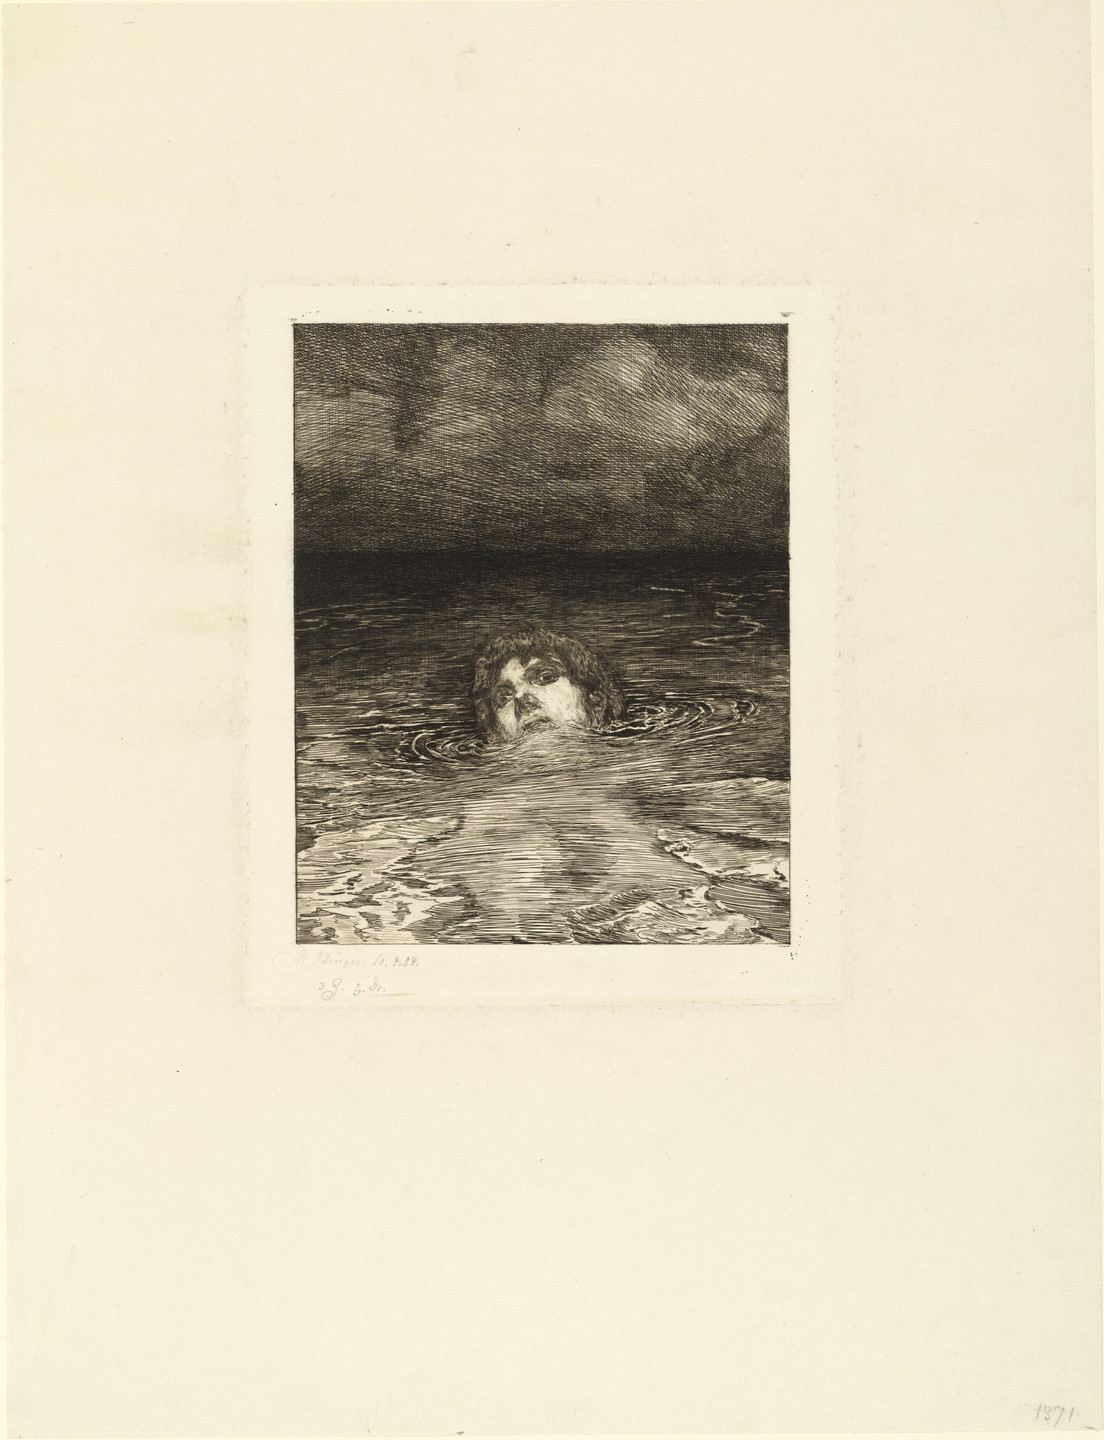 Max Klinger. Going Under Going Under (rejected plate) for the supplementary suite accompanying the portfolio A Life, Opus VIII. 1884